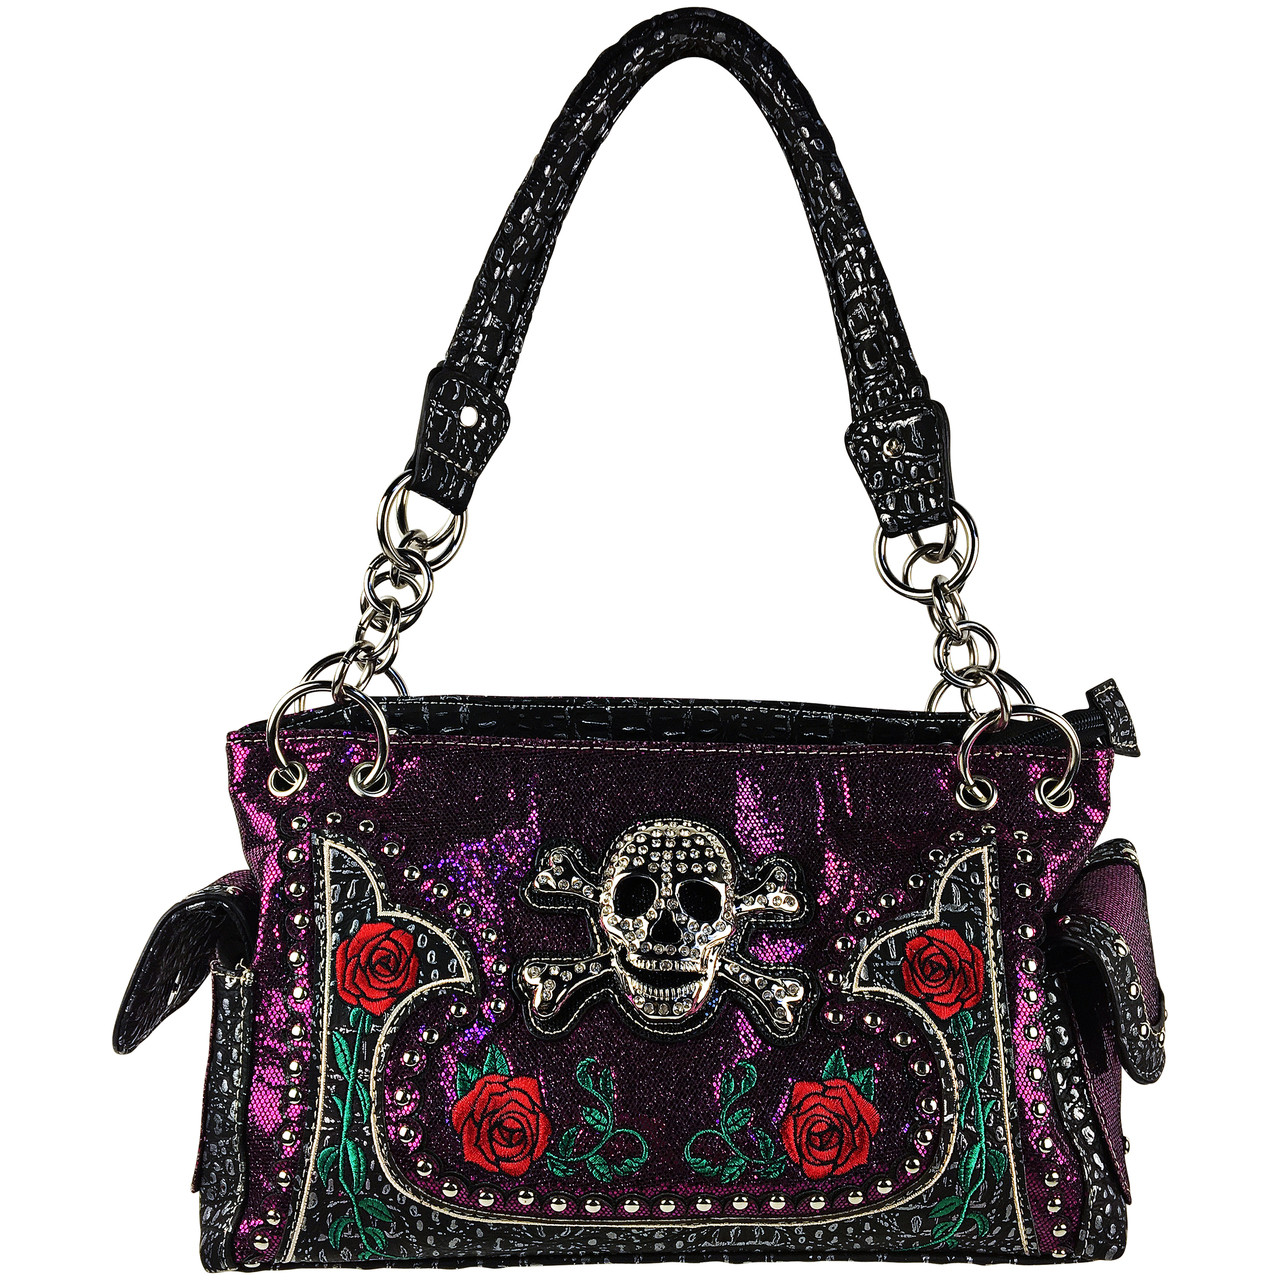 PURPLE RHINESTONE GLITTER SKULL LOOK SHOULDER HANDBAG